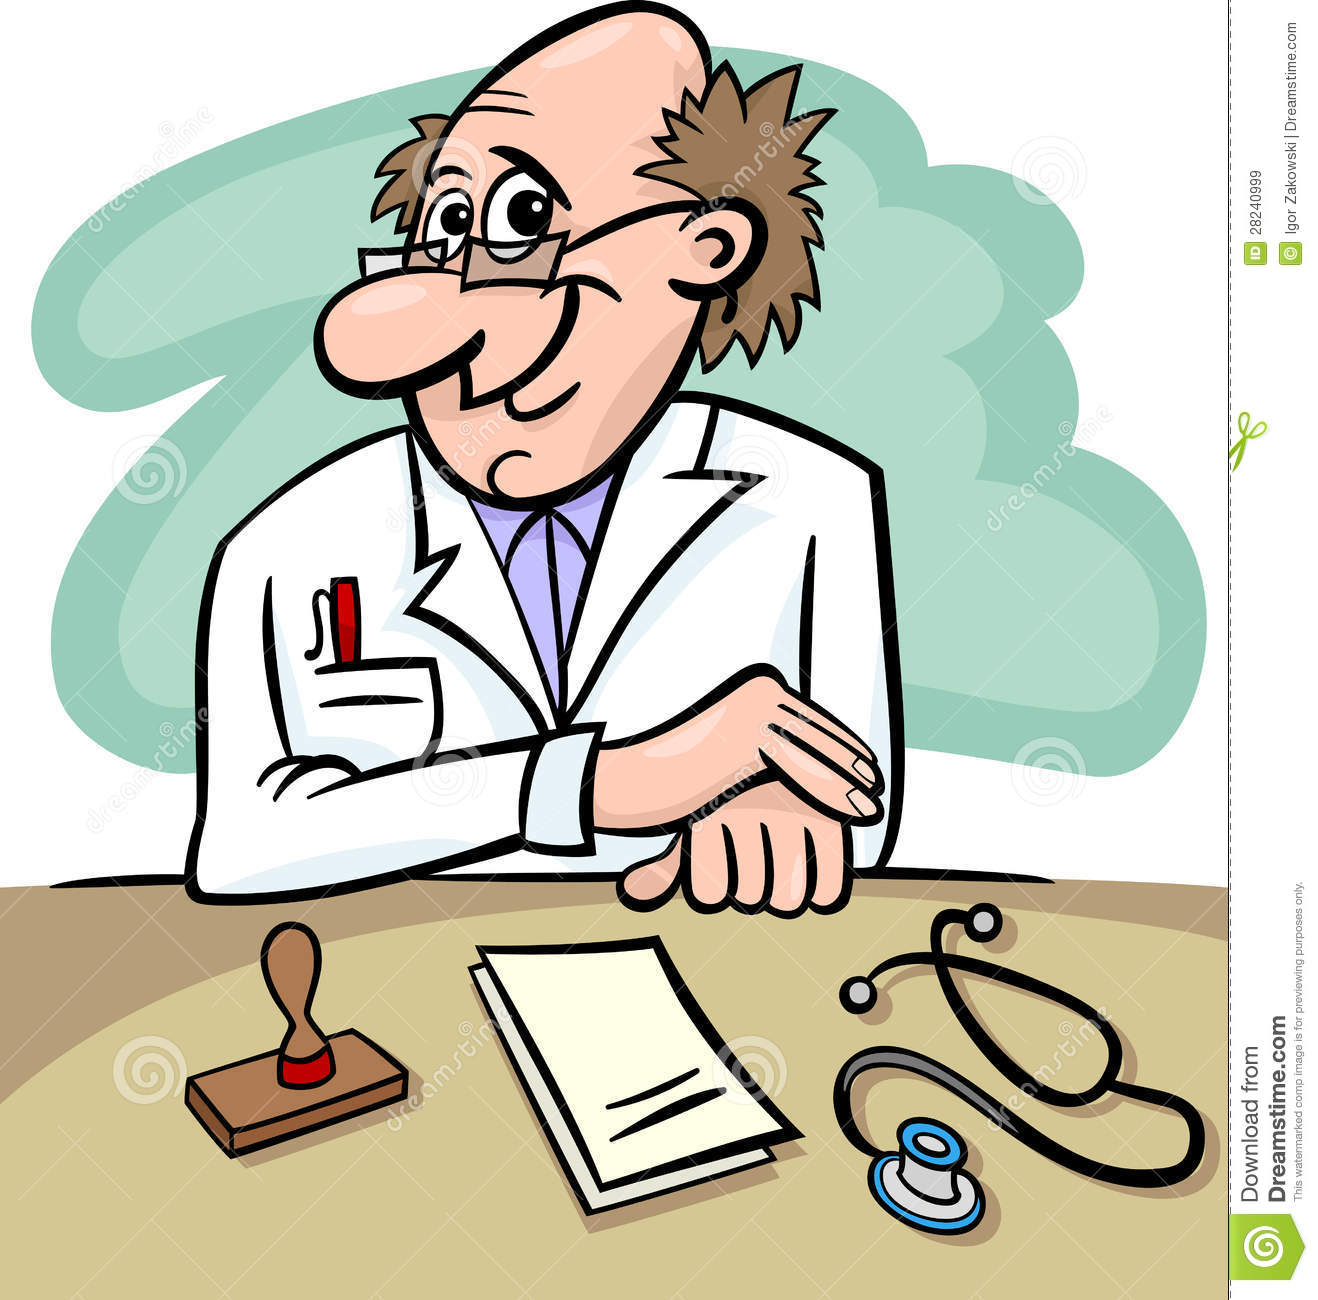 Doctor In Clinic Cartoon Illustration Royalty Free Stock